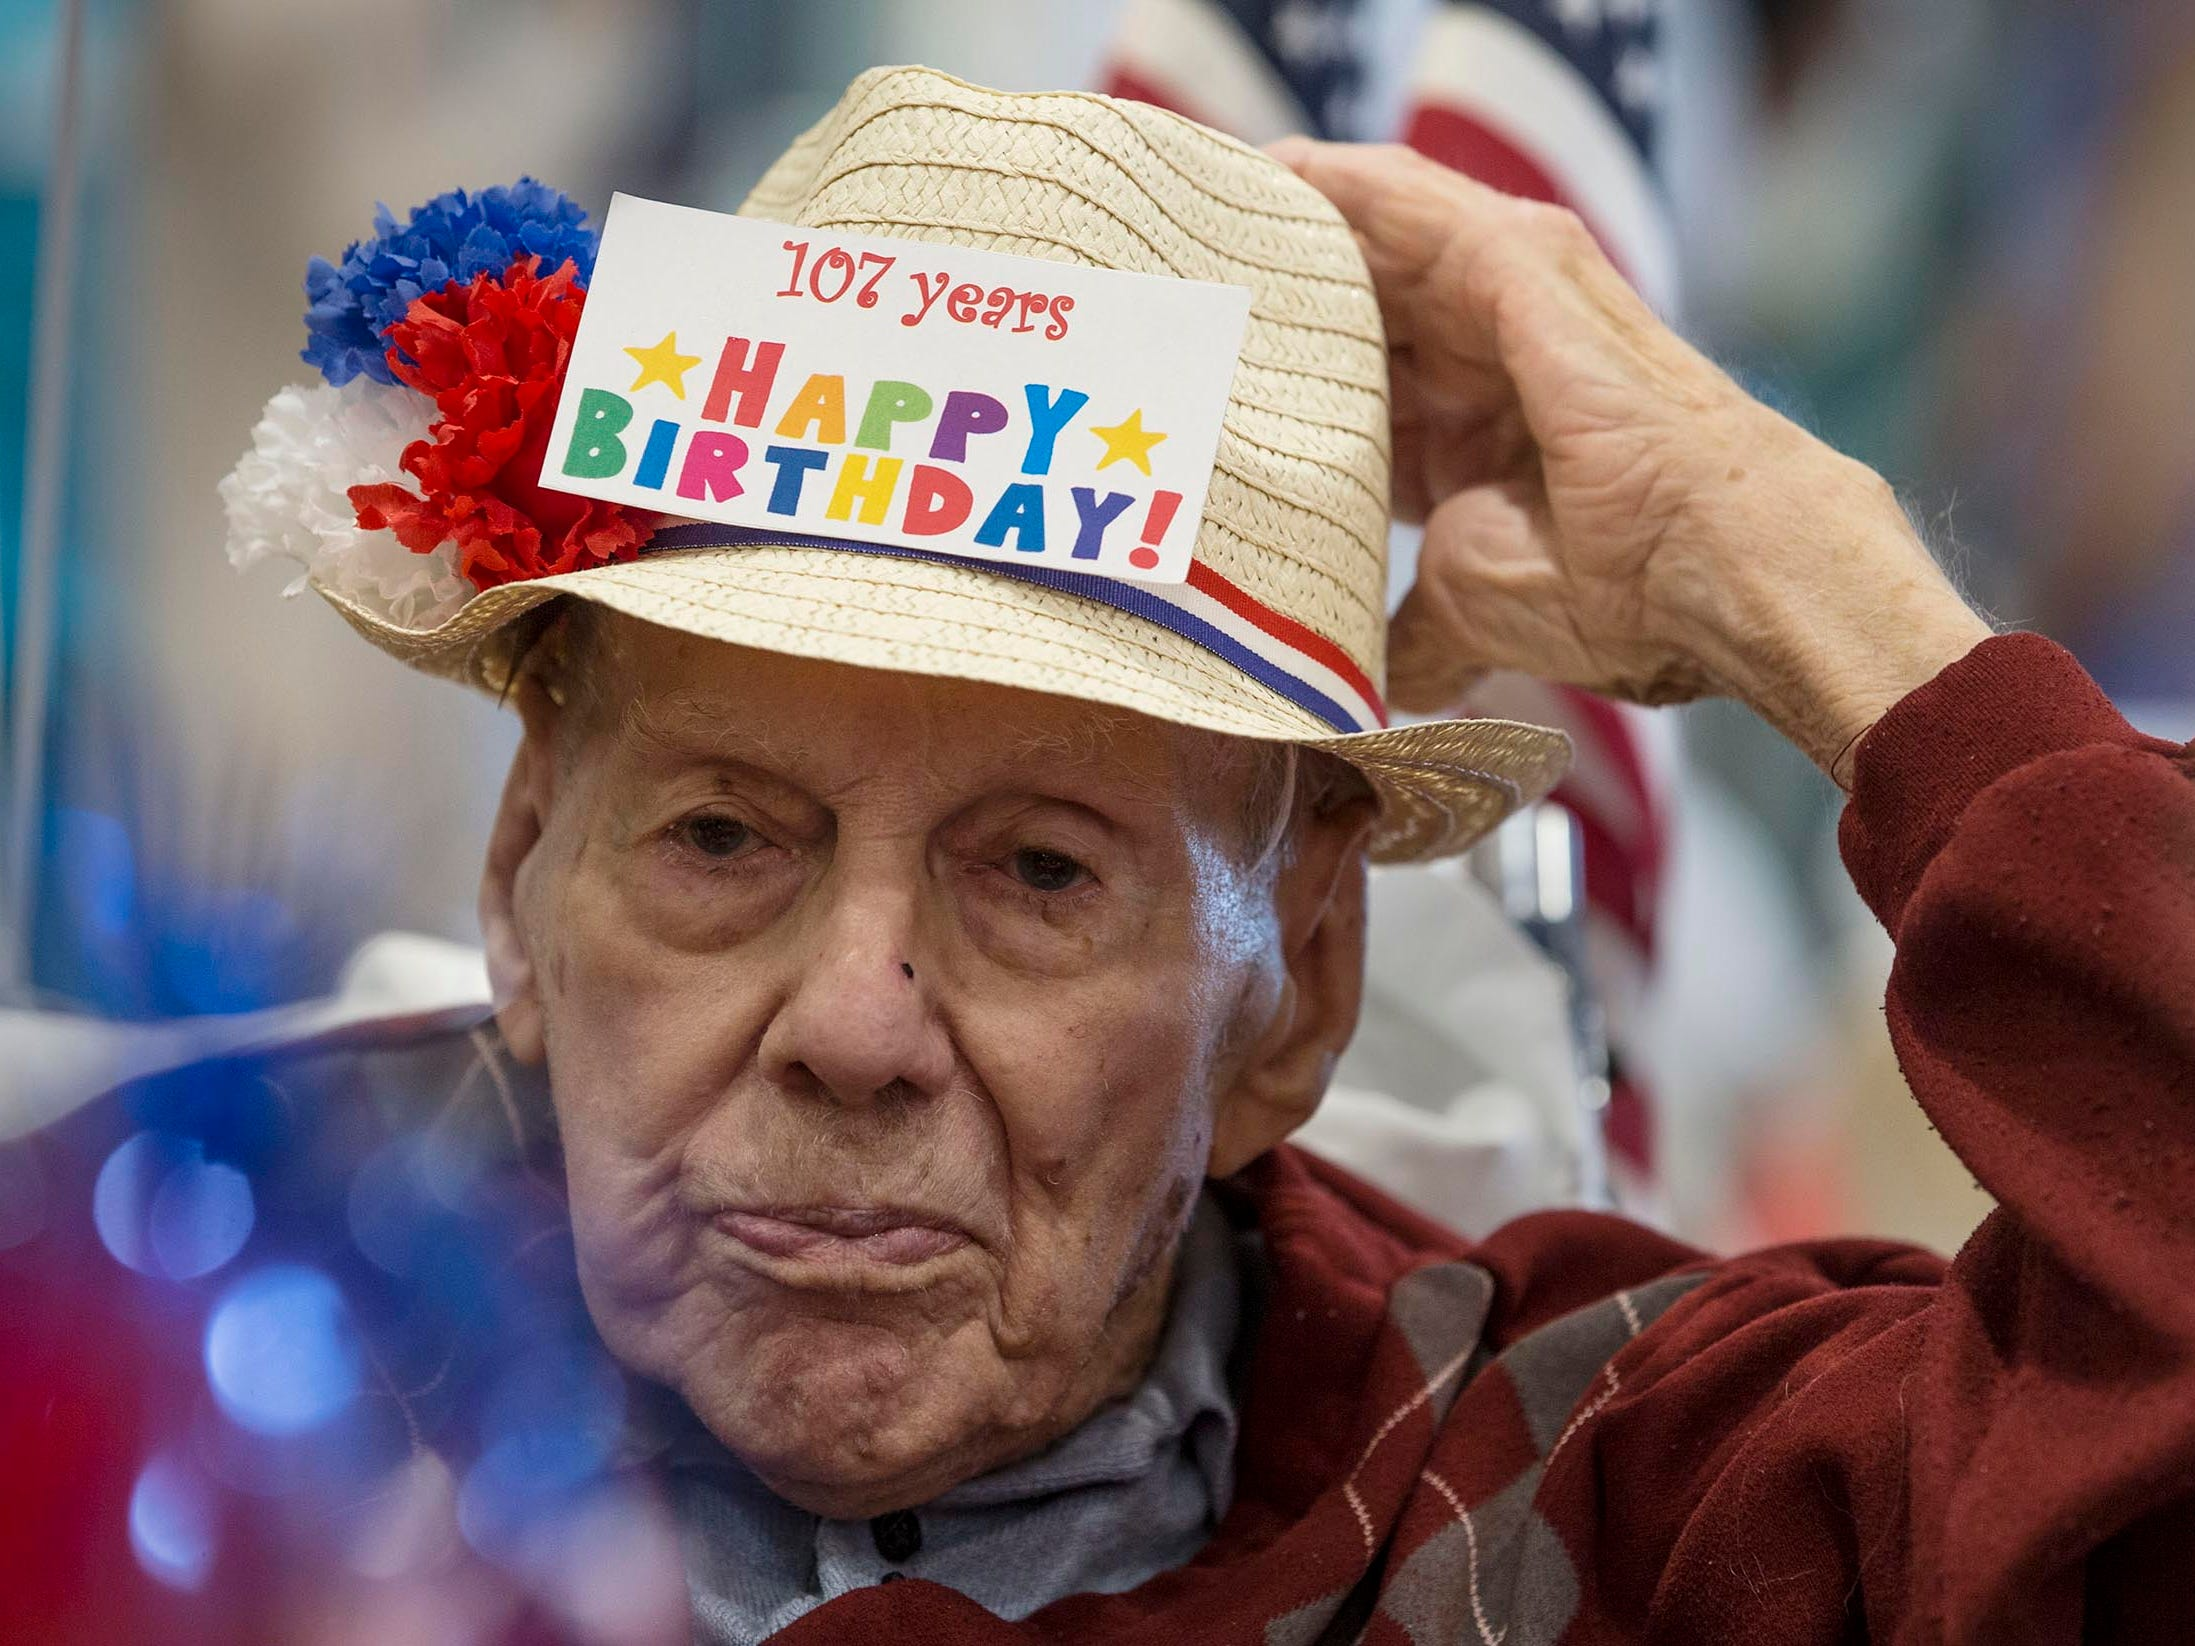 World War II veteran and Flying Tiger Bill Laun of Manchester, is honored with a party for turning 107 years old in  Manchester, NJ on June 8, 2018